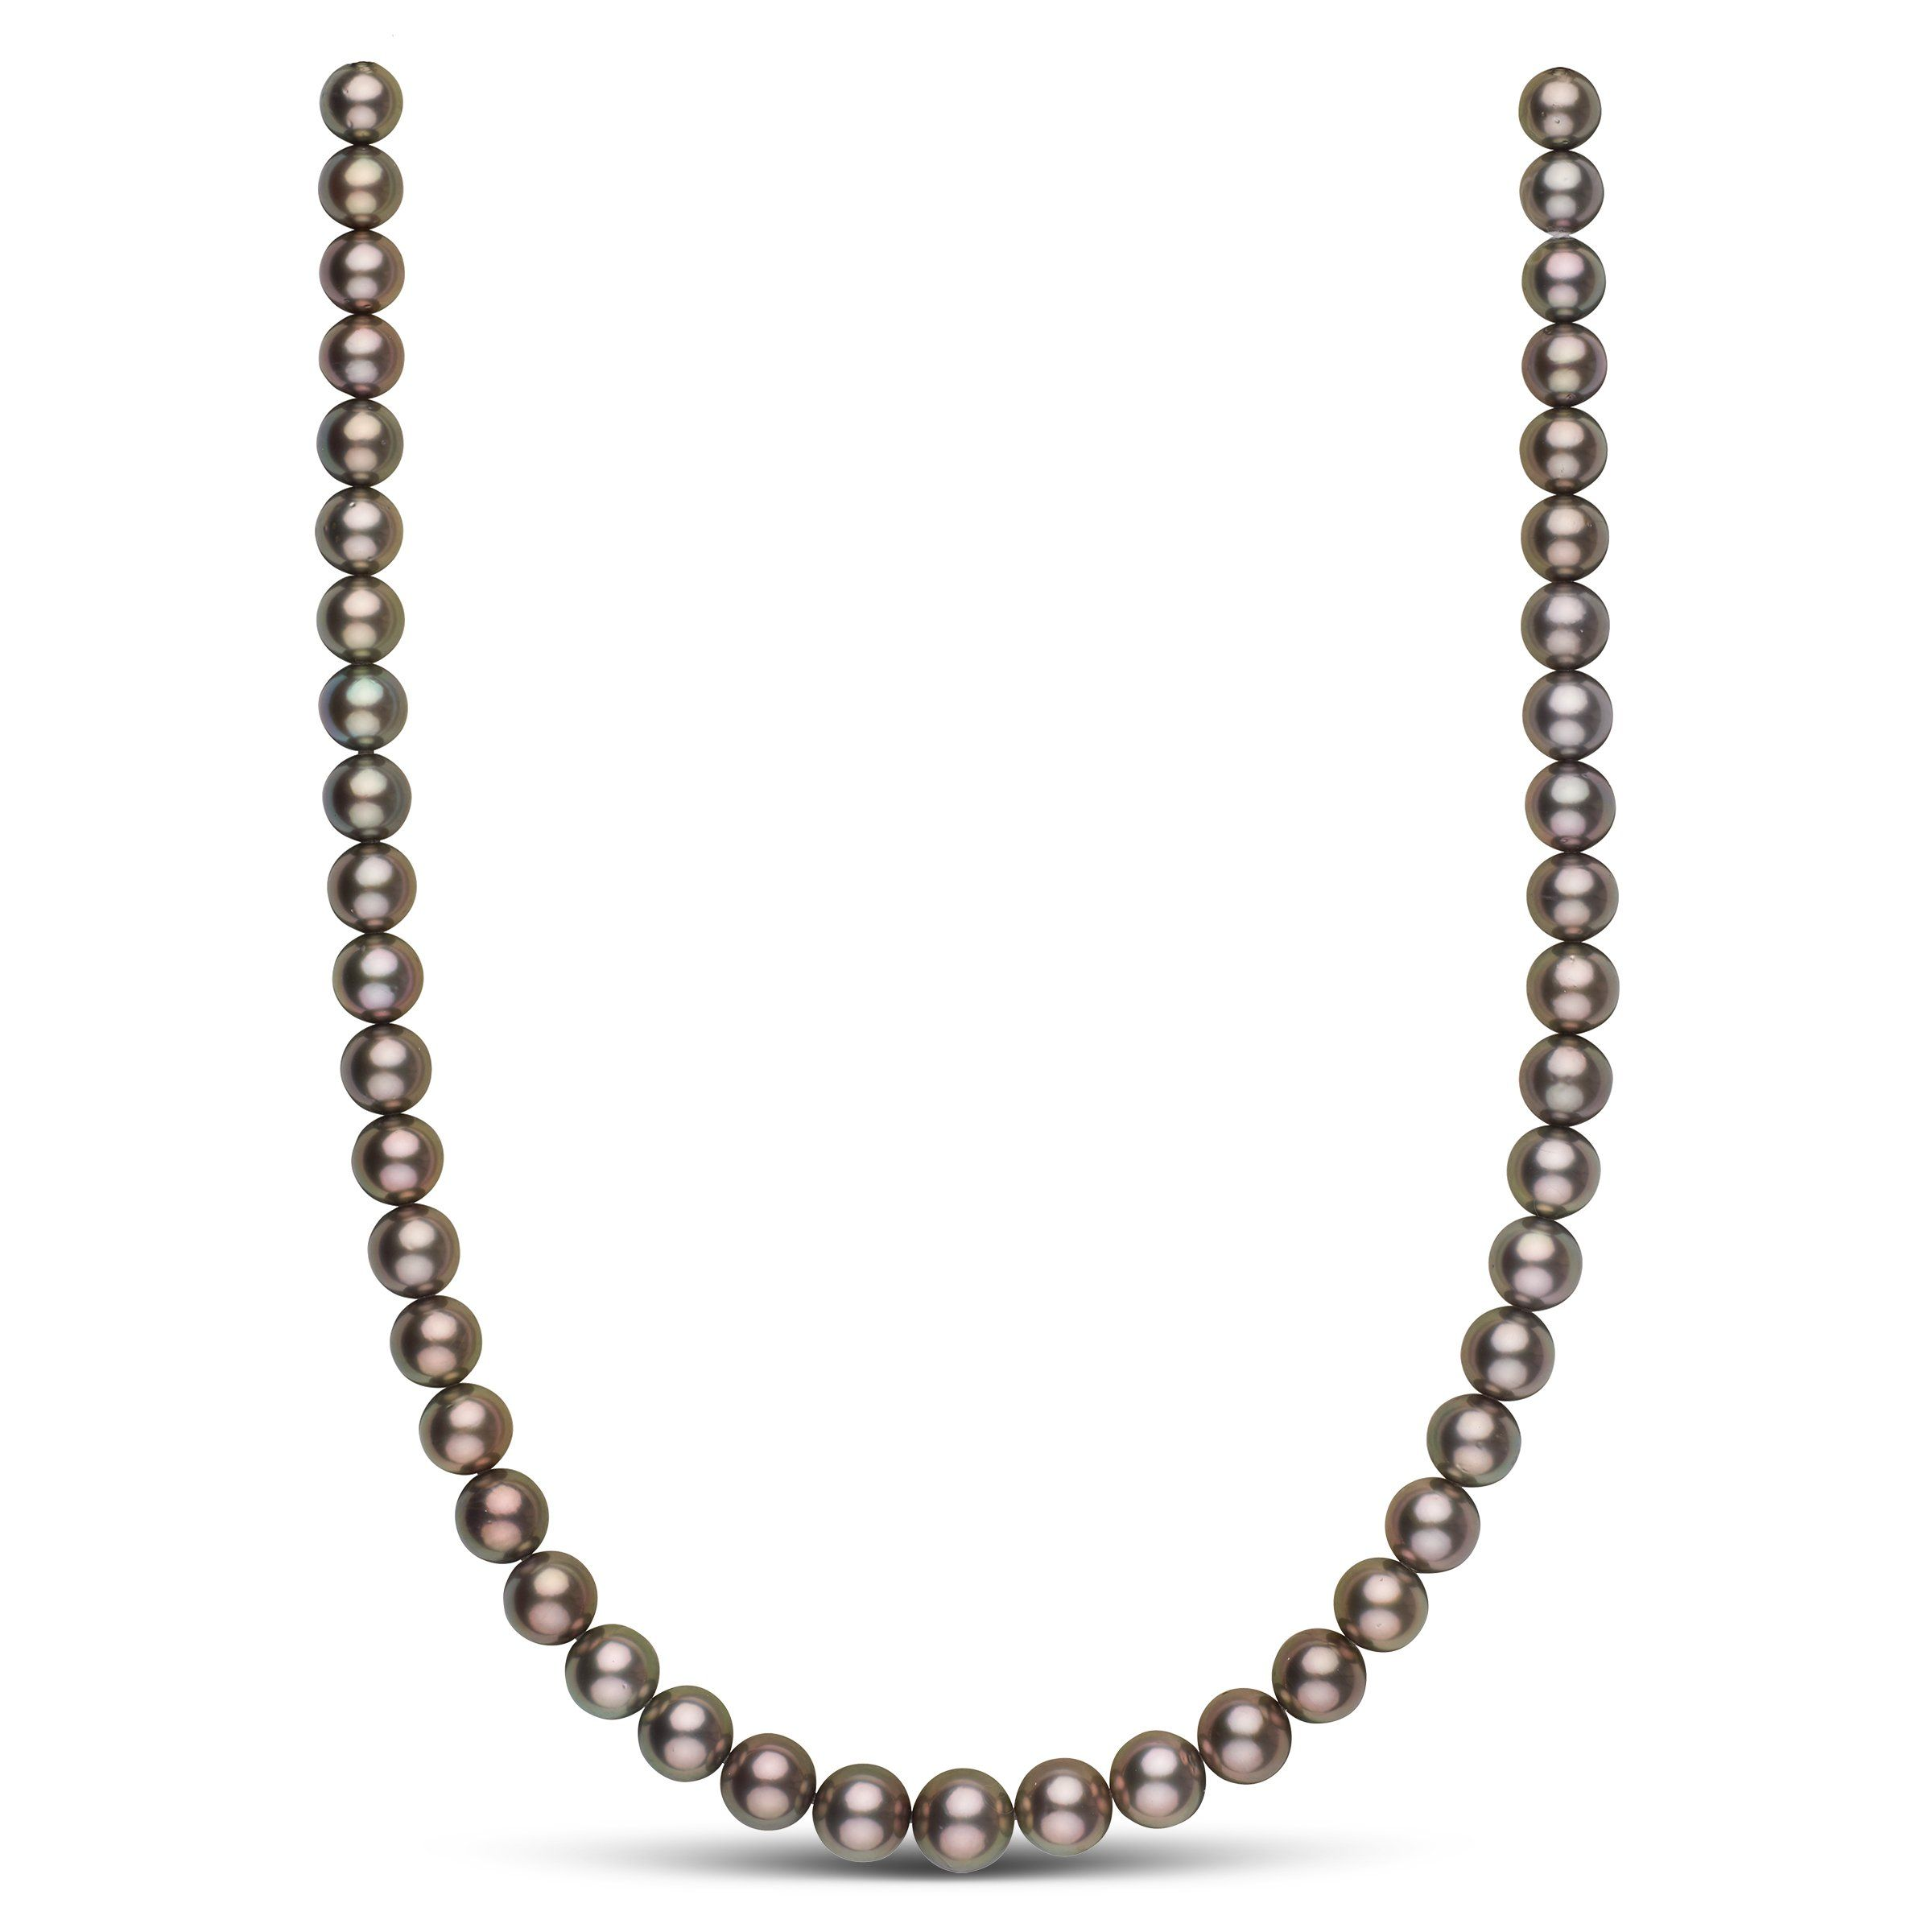 8.4-10.4 mm AA+/AAA Tahitian Round Pearl Necklace